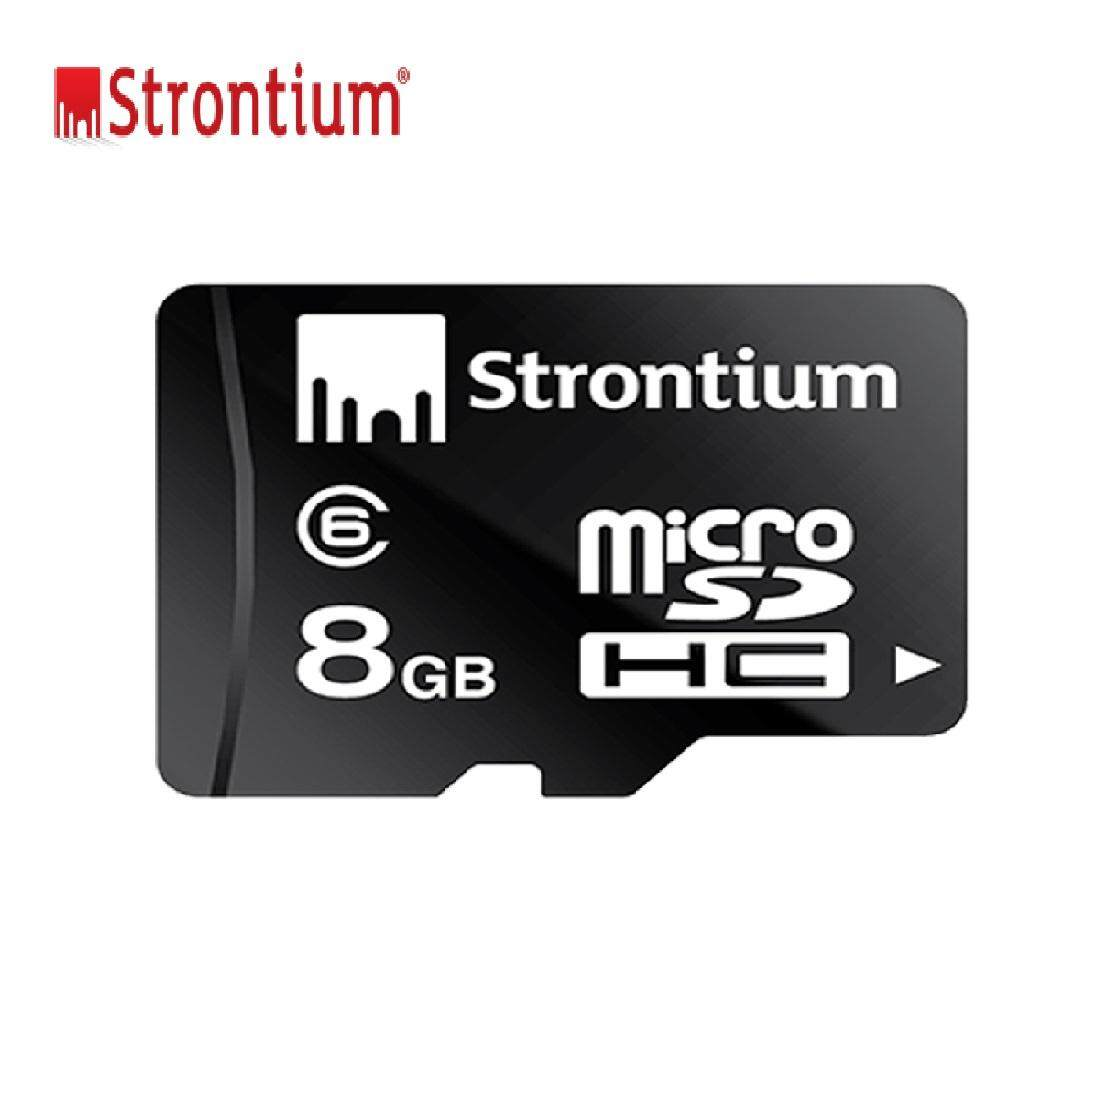 Original Strontium 8gb Memory Card Class 6 Mirco Sdhc Sd Card Fast Speed Transfer By Global Trend.